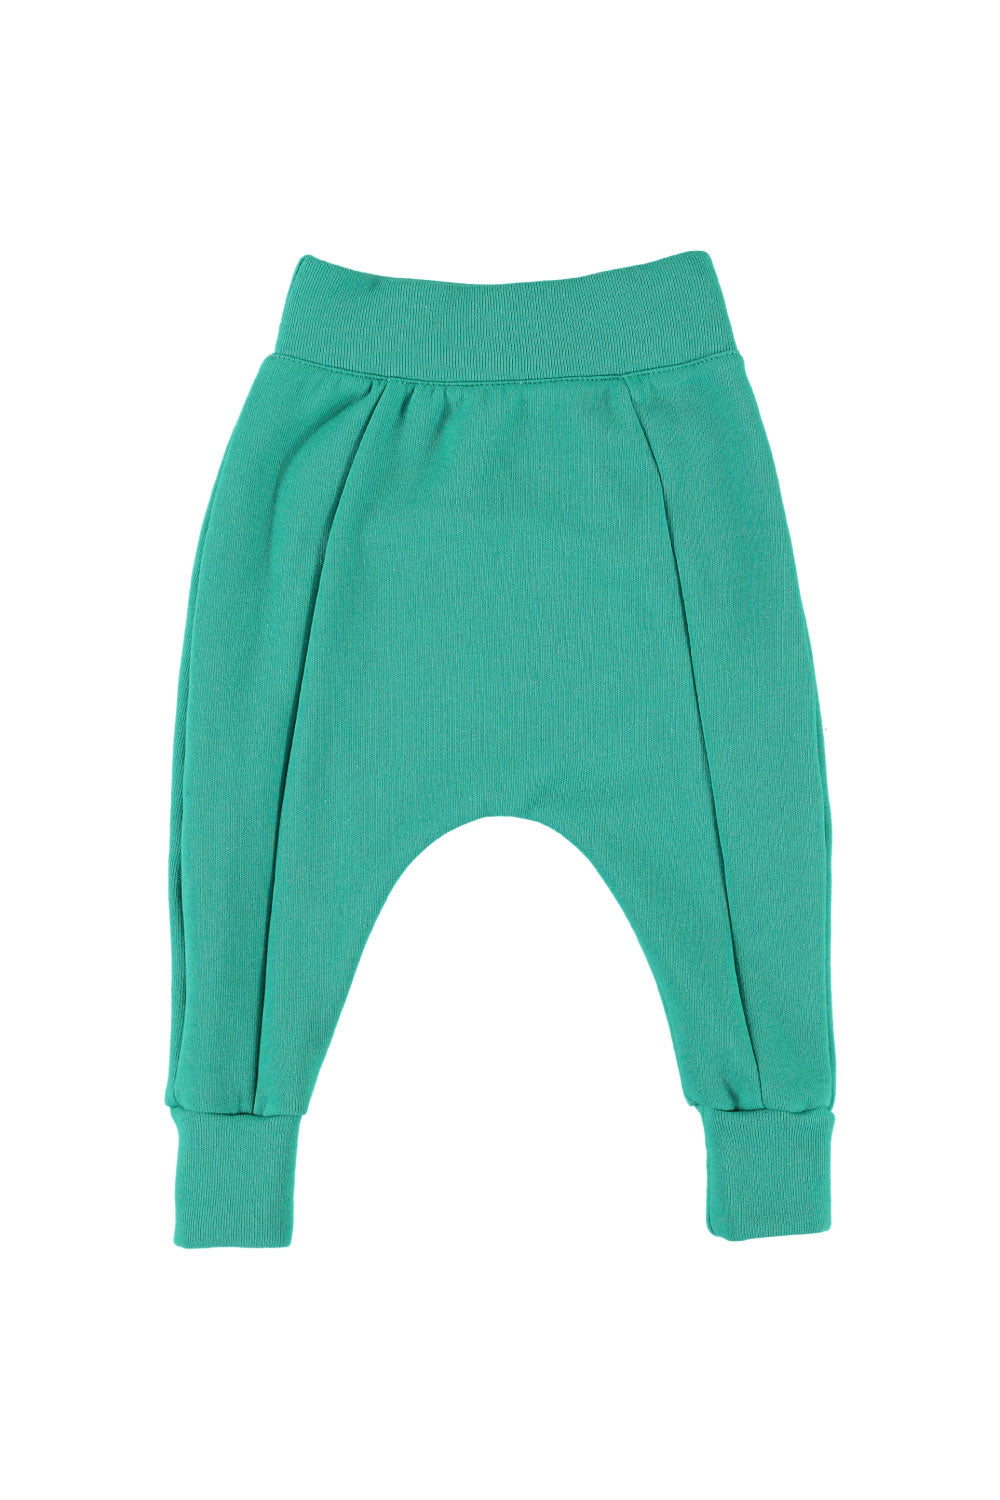 Seamed Harem Pants - Grass Green